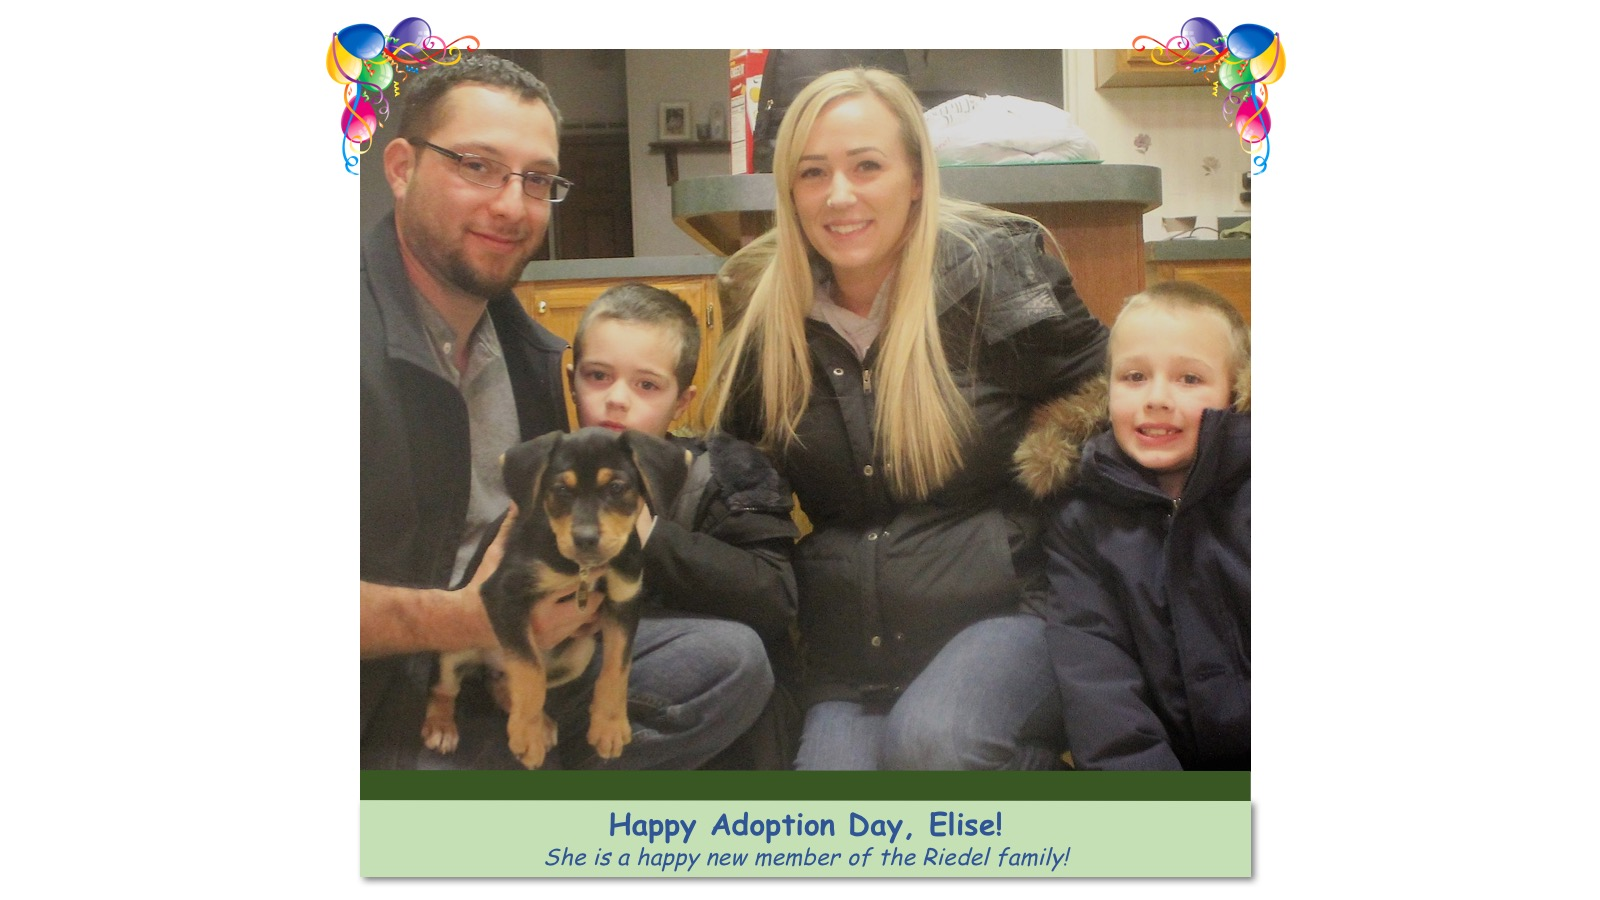 Elise_Adoption_photo.jpg